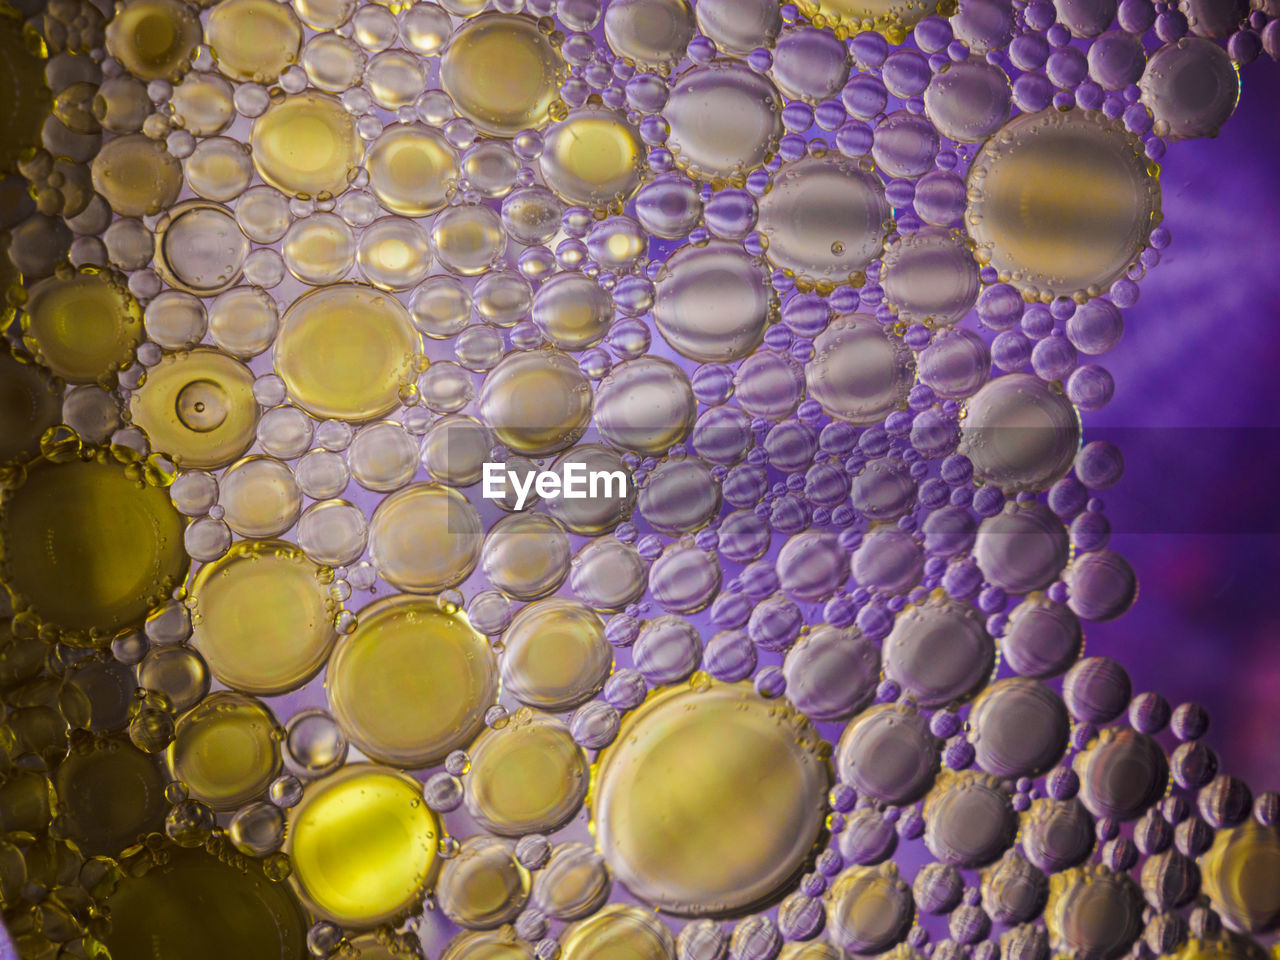 Colorful macro shot of olive oil bubbles in a colored glass of water